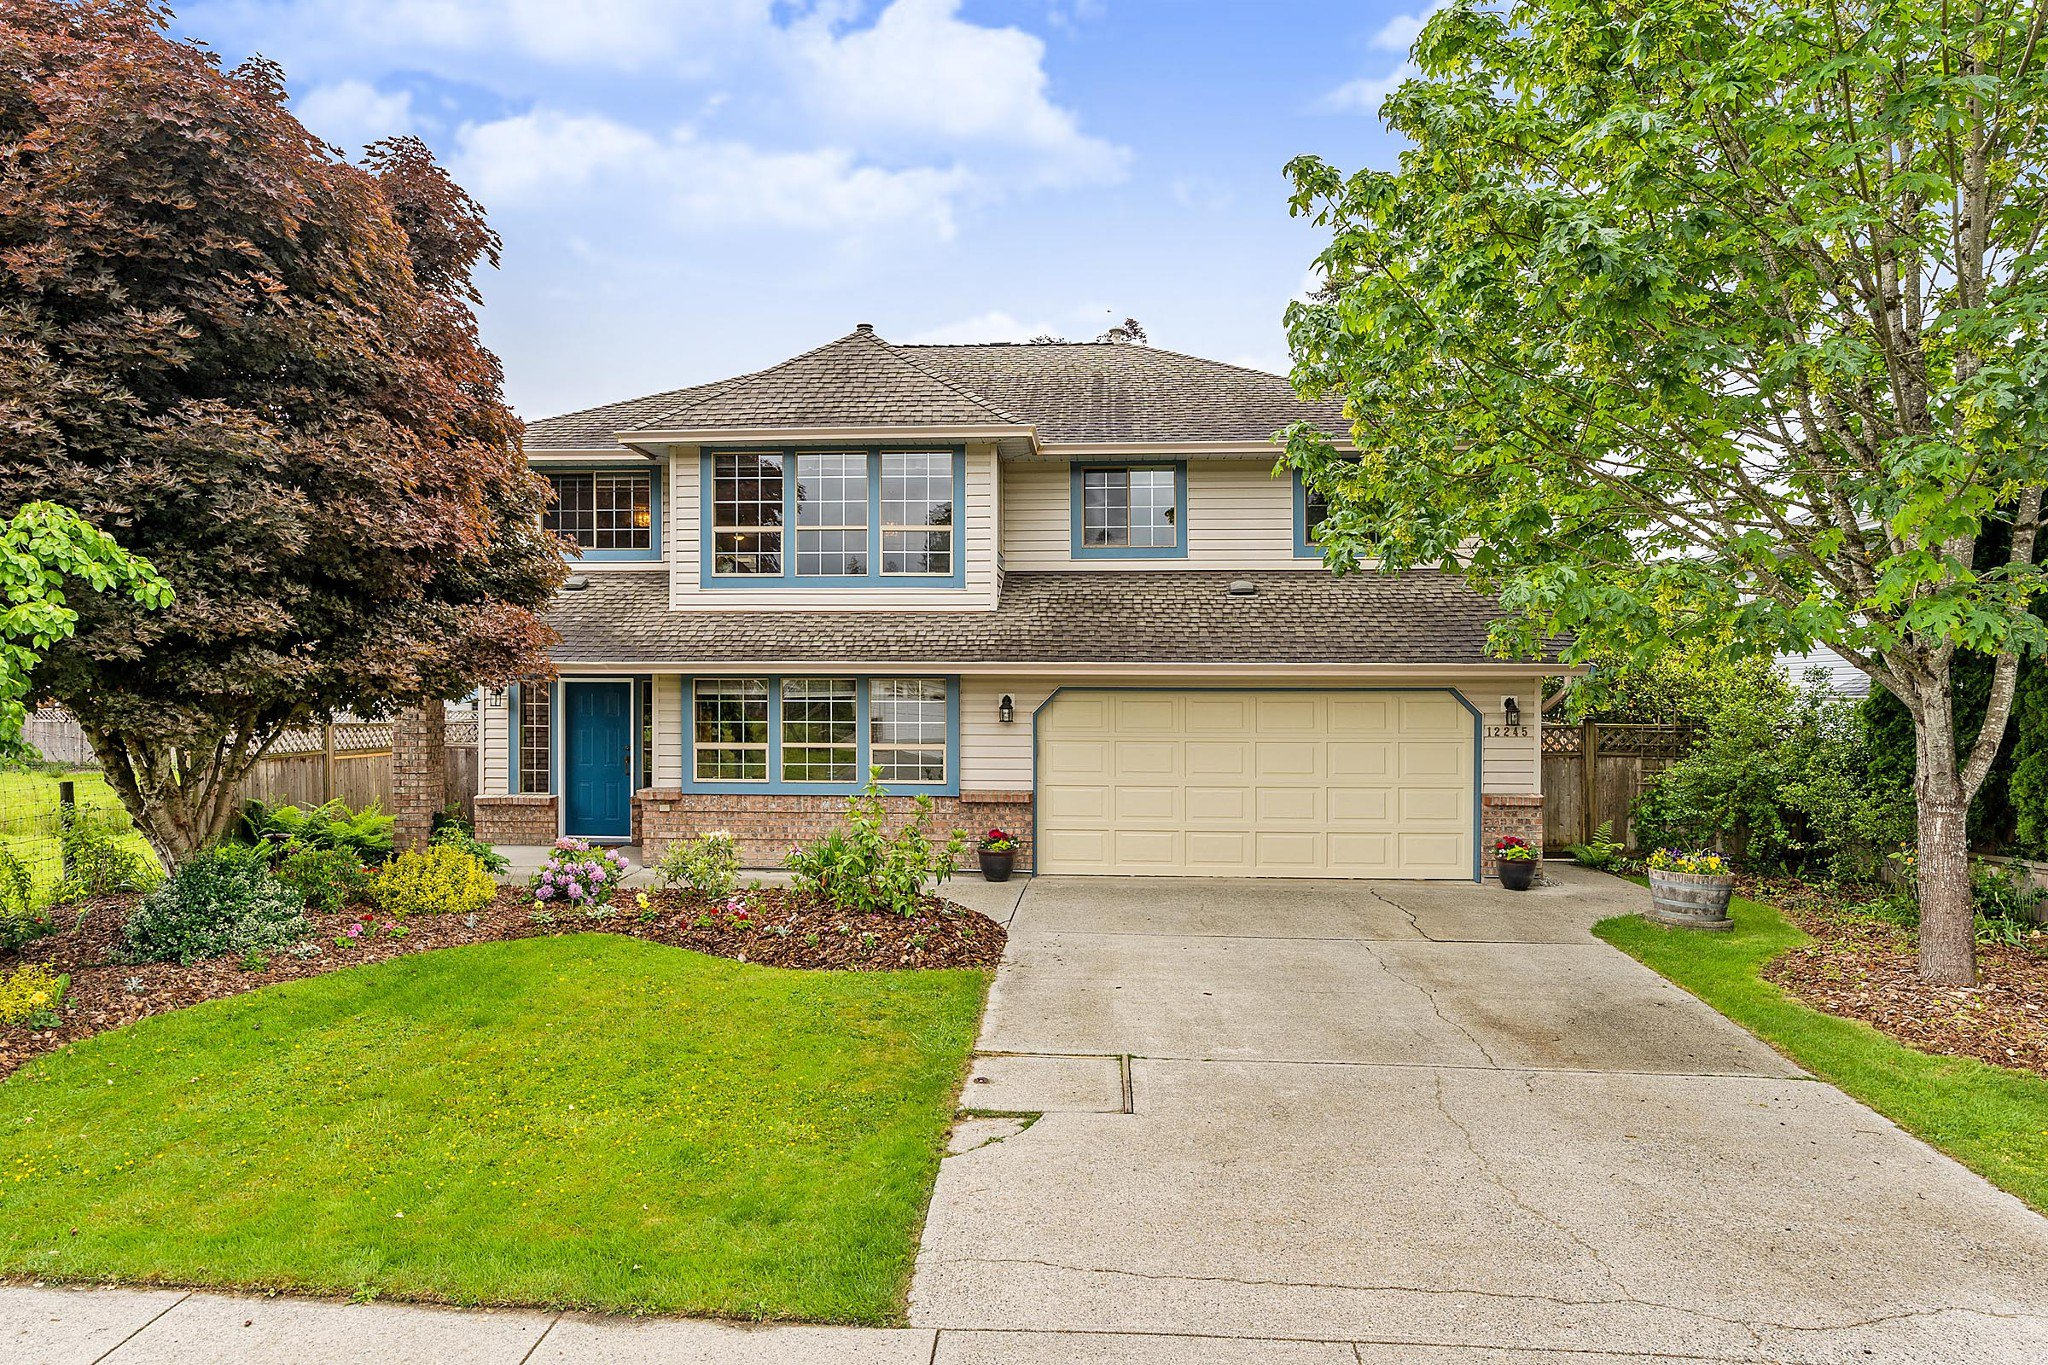 Main Photo: 12245 233 Street in Maple Ridge: East Central House for sale : MLS®# R2376318